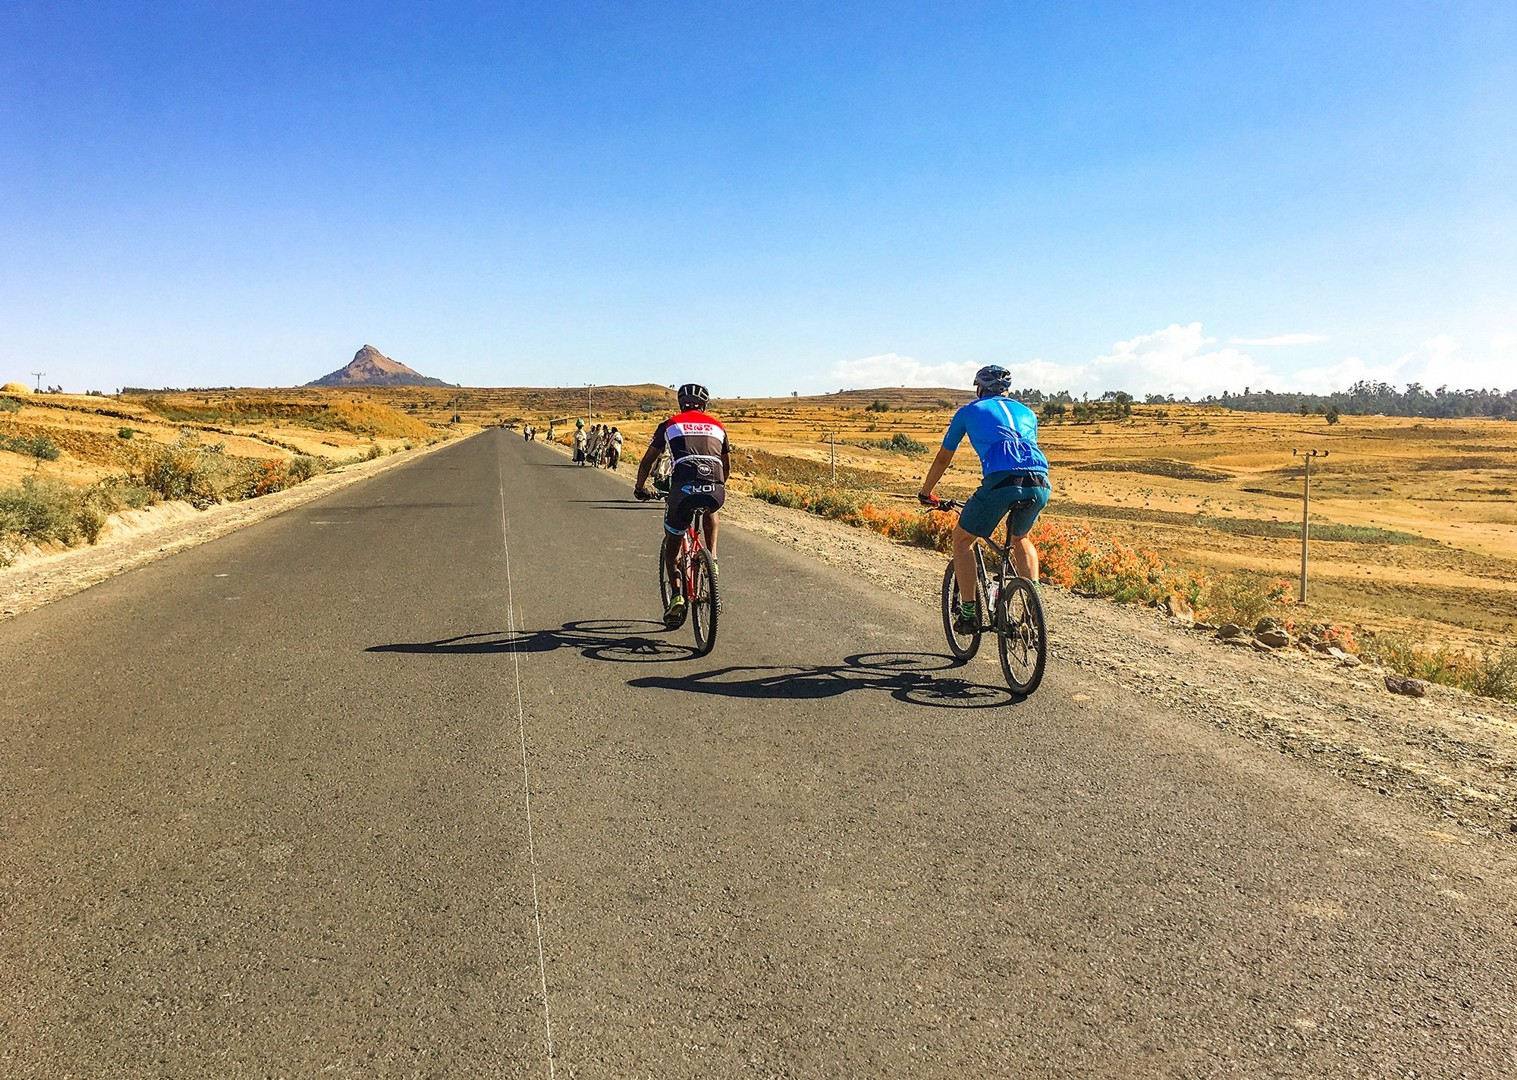 cycling-adventure-trip-ethiopia-holiday.jpg - NEW! Ethiopia - Enchanting Ethiopia - Cycling Adventures